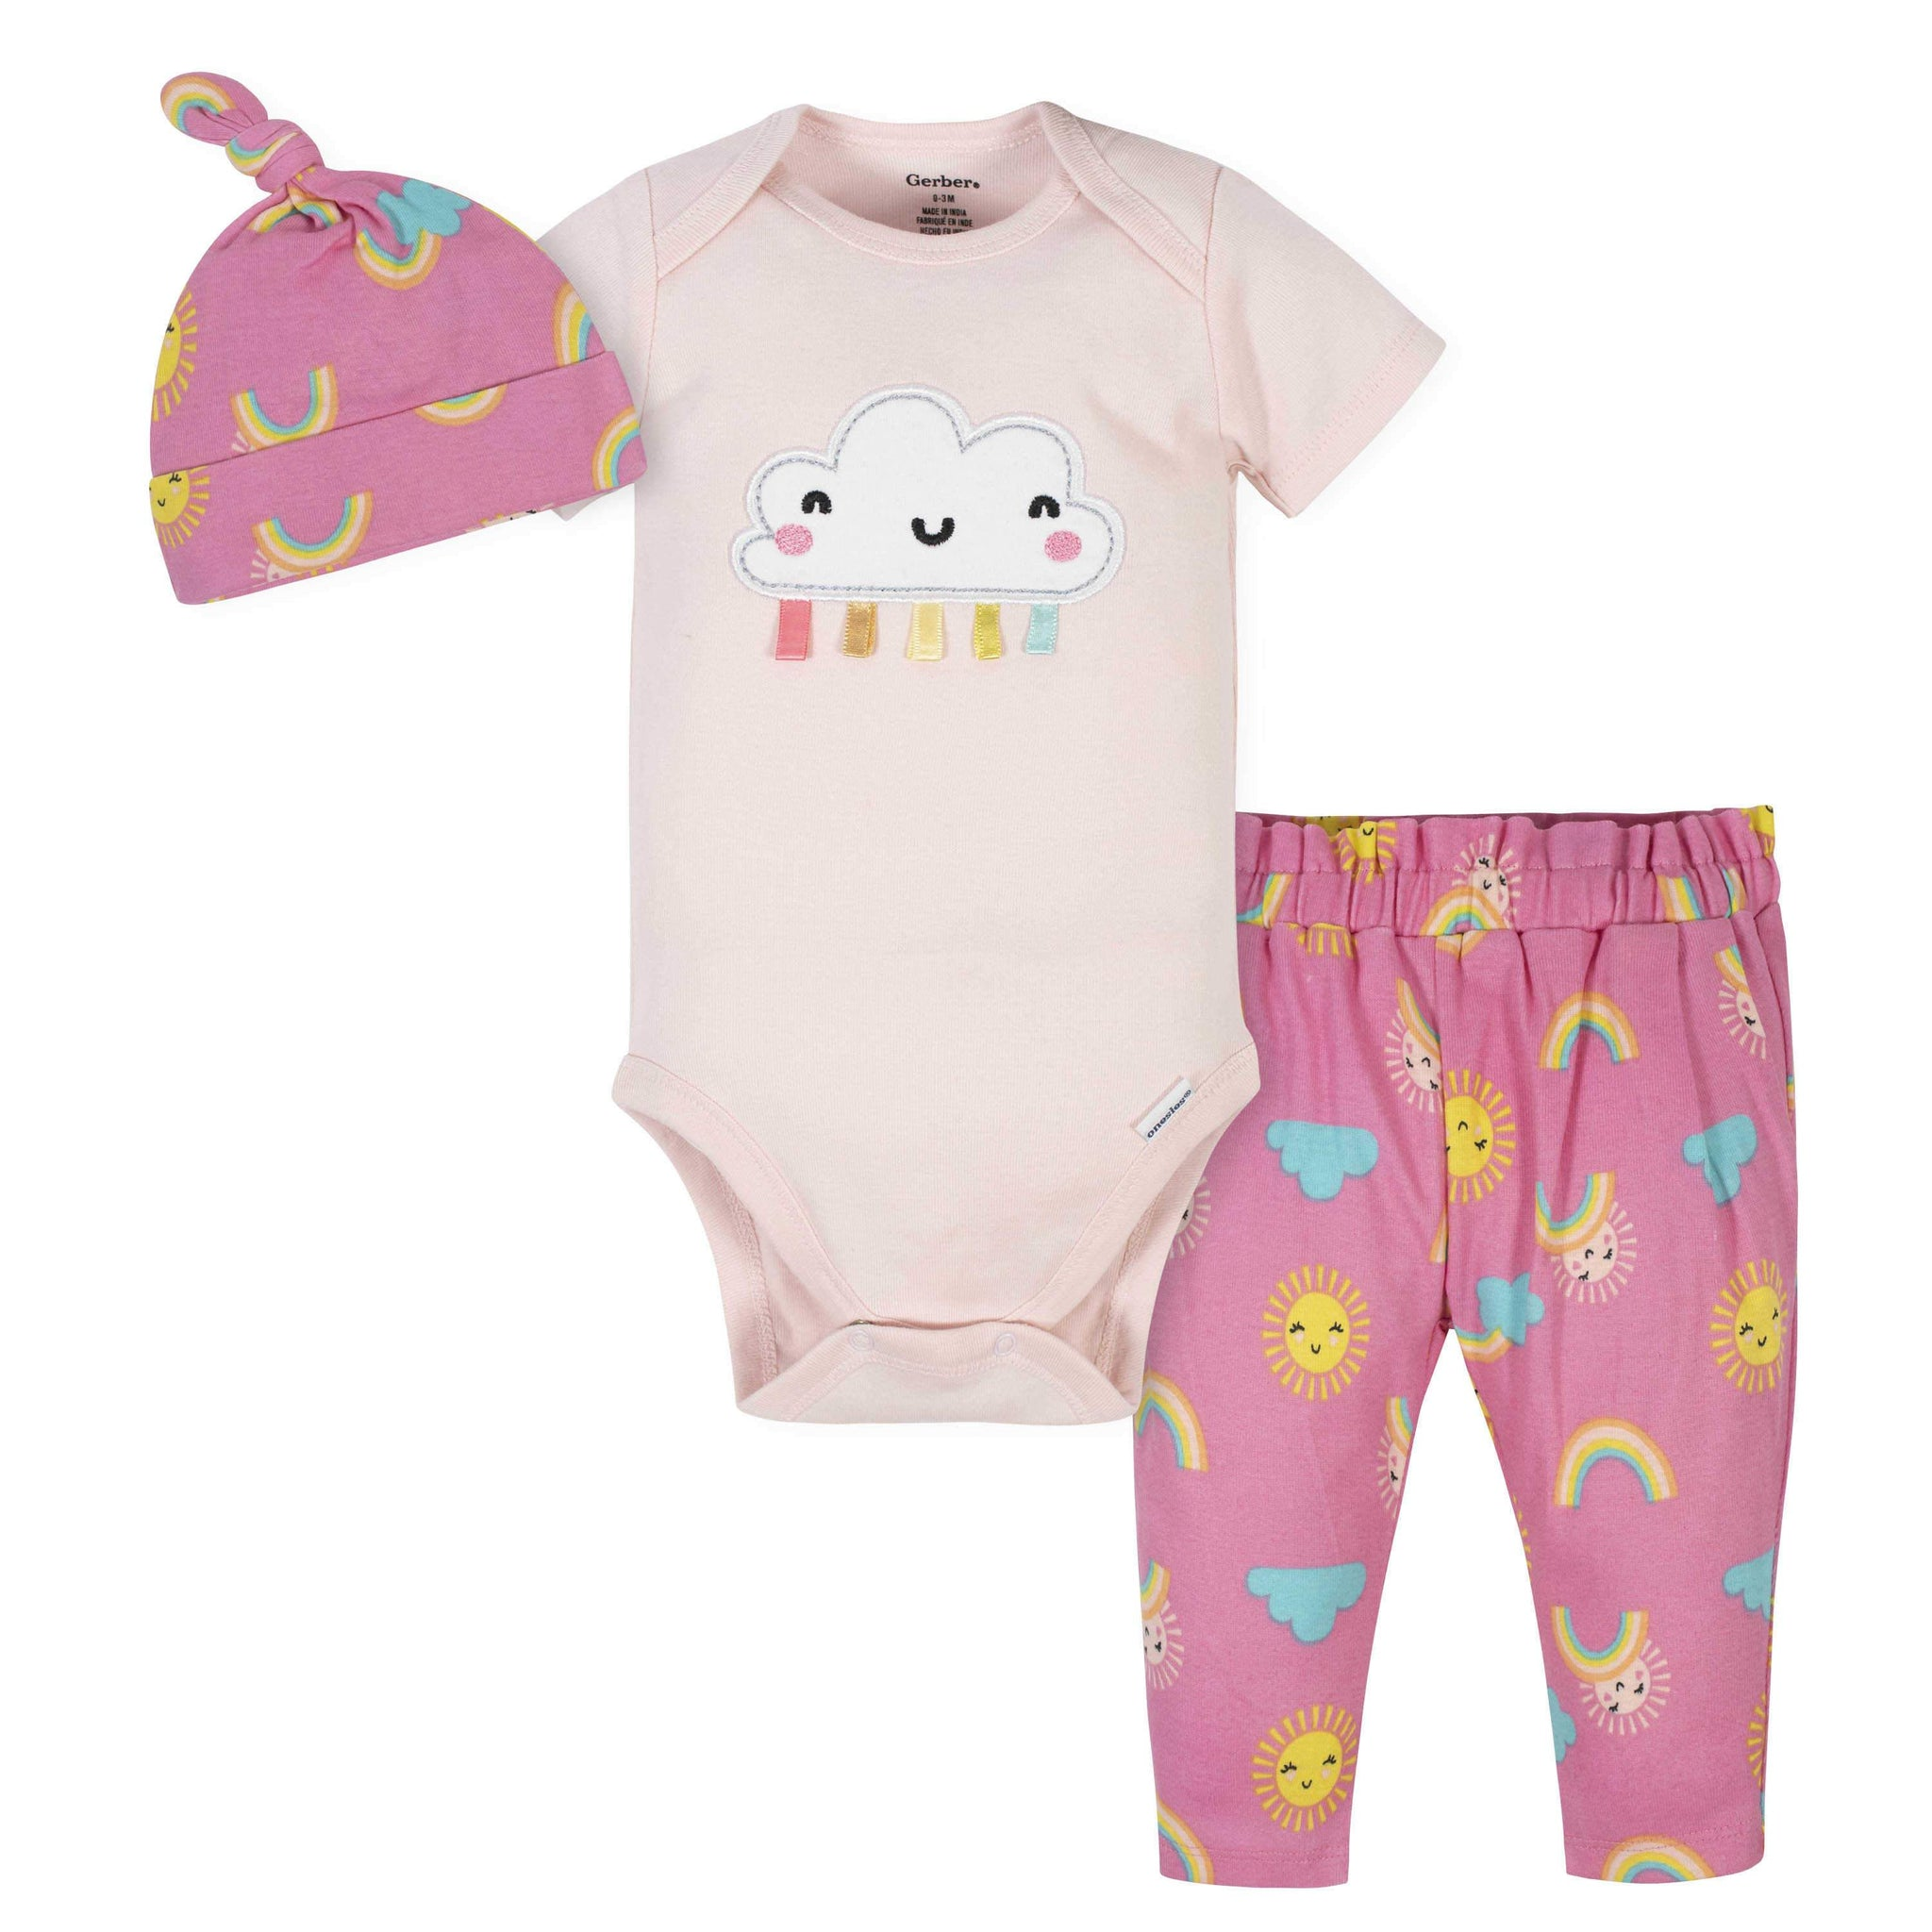 3-Piece Baby Girls Rainbows Bodysuit, Pants & Cap Set